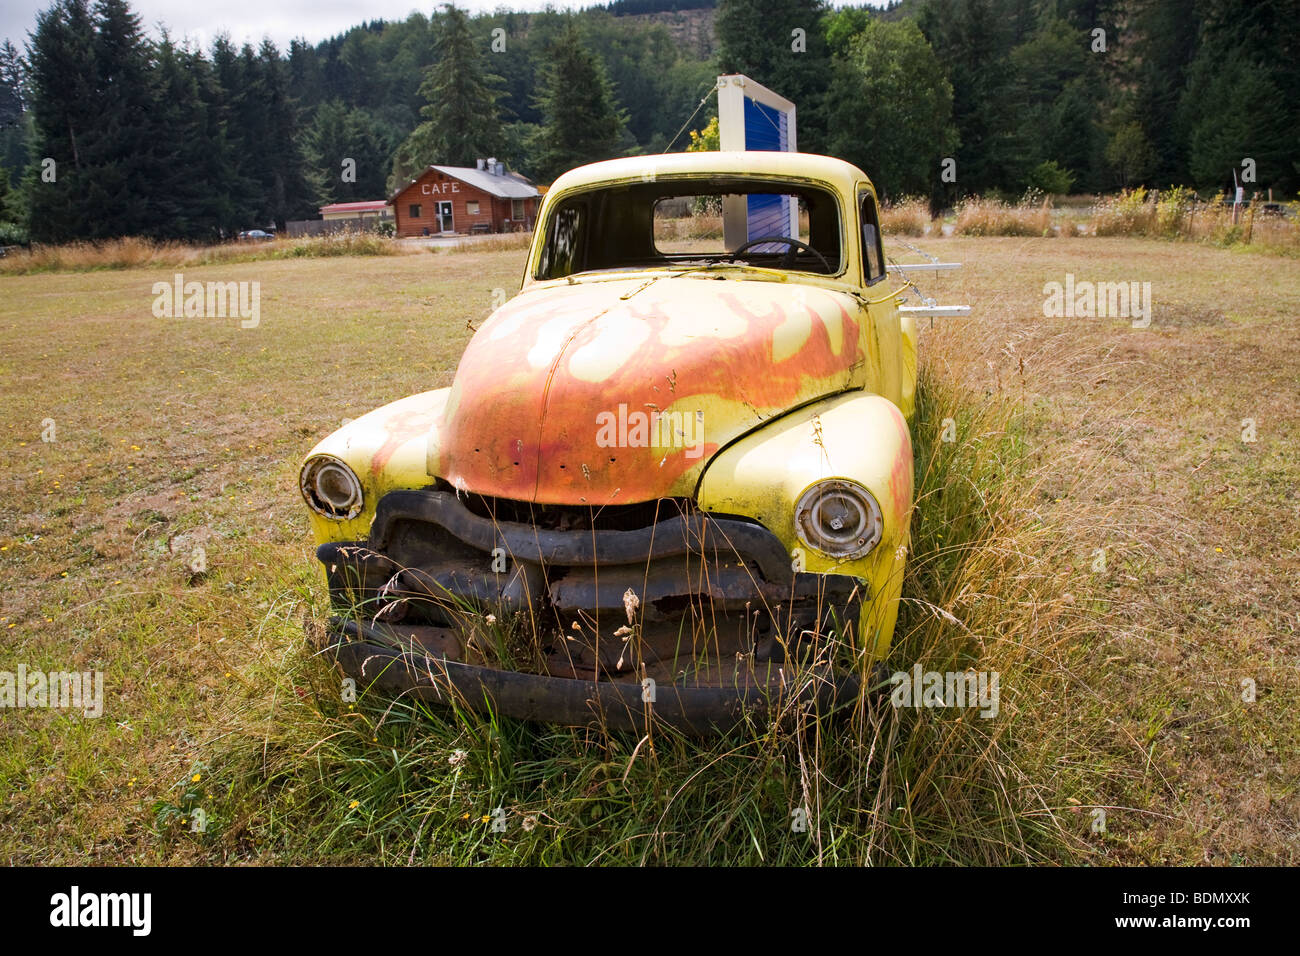 An ancient Chevrolet pickup truck rusting in a field in the Oregon Coast Range near Philomath, Oregon. - Stock Image